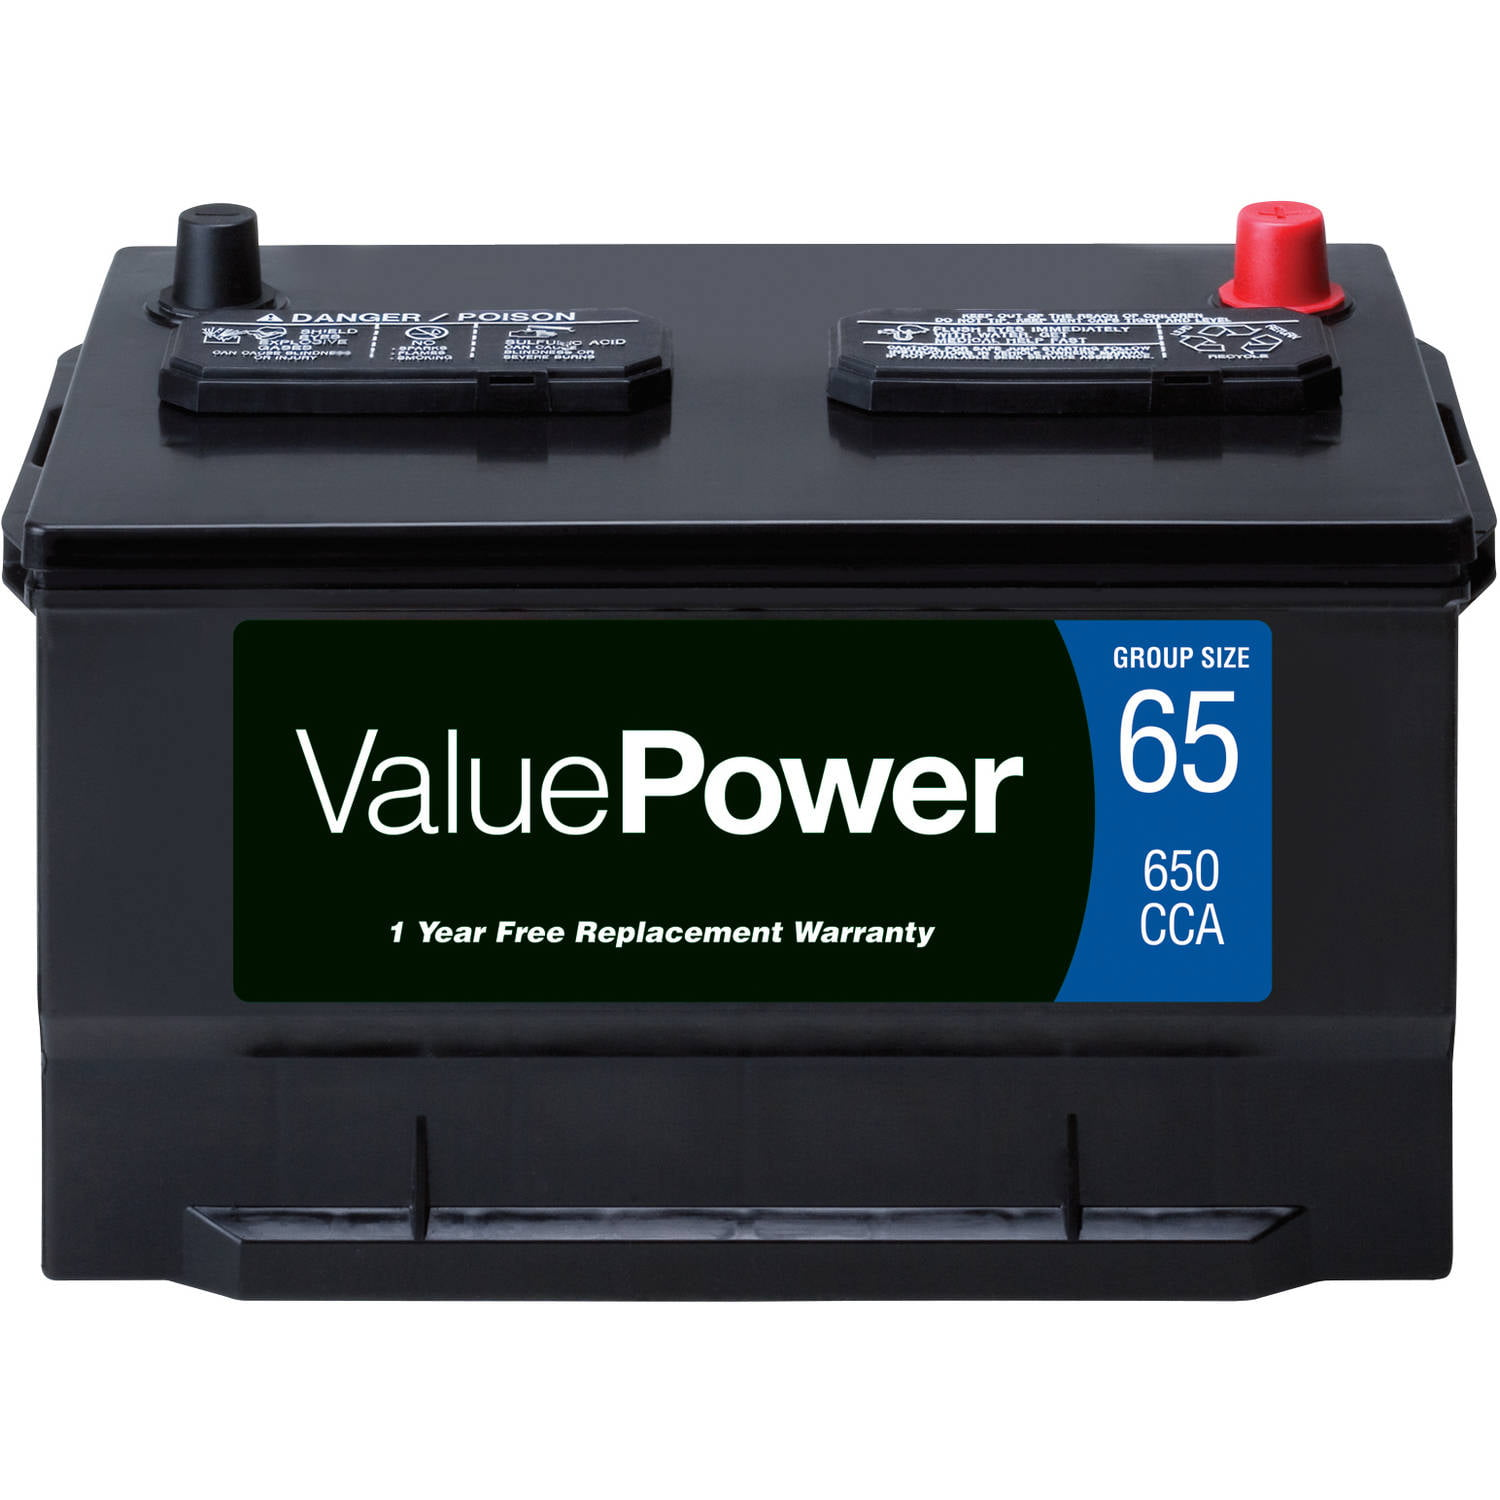 Used Car Batteries Near Me >> Valuepower Lead Acid Automotive Battery Group 65 Walmart Com